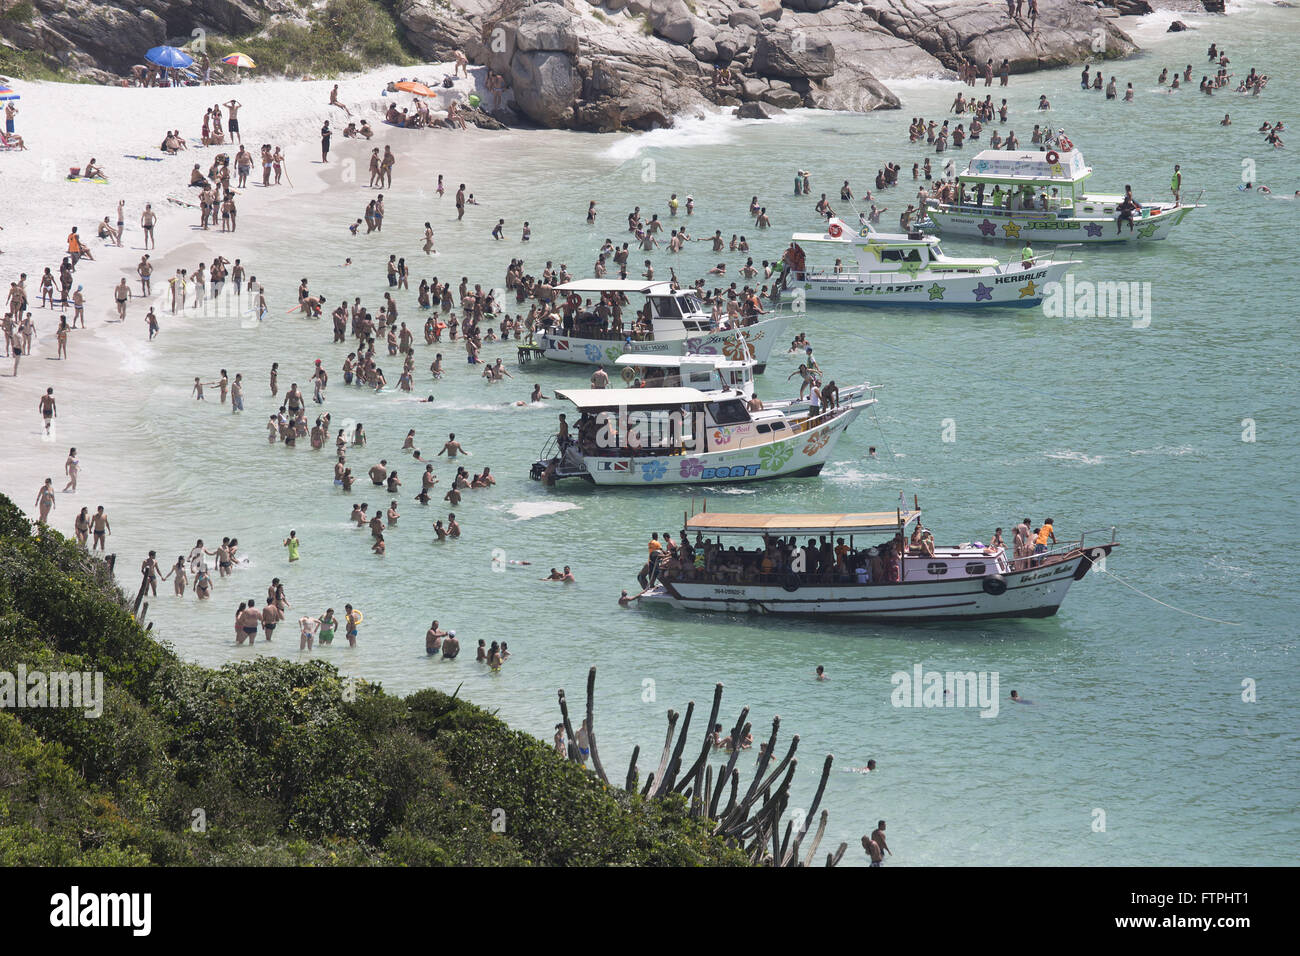 Swimmers and boats in the Prainha of Depth Watchtower - Stock Image